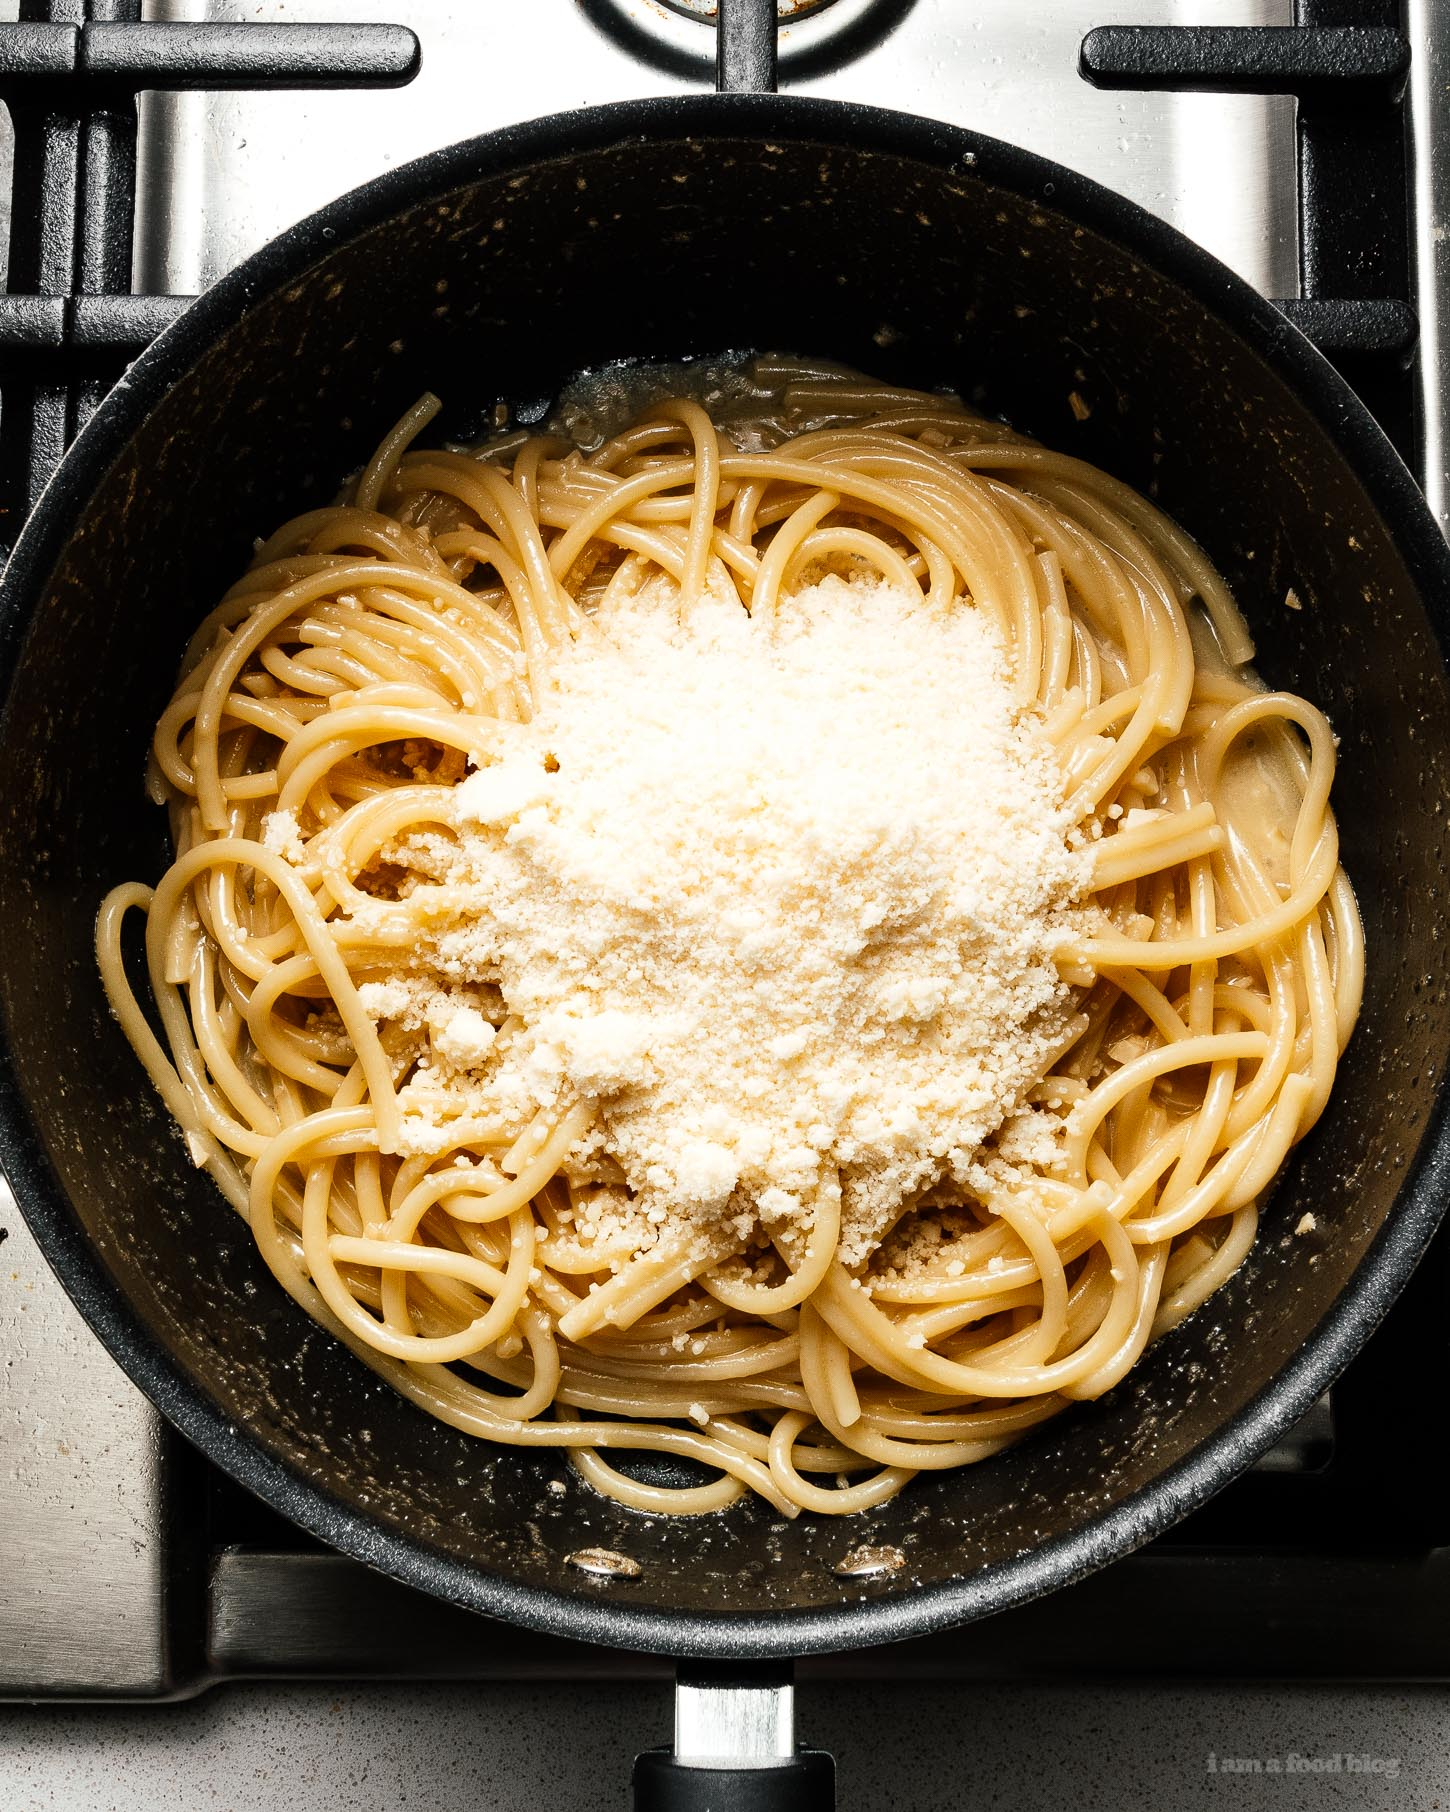 When you're craving a bowl of childhood comfort with just a hint of adulting, make yourself a bowl of these garlicky brown butter parmesan noodles #recipes #dinner #easy #brownbutter #garlicnoodles #parmesan #butternoodles